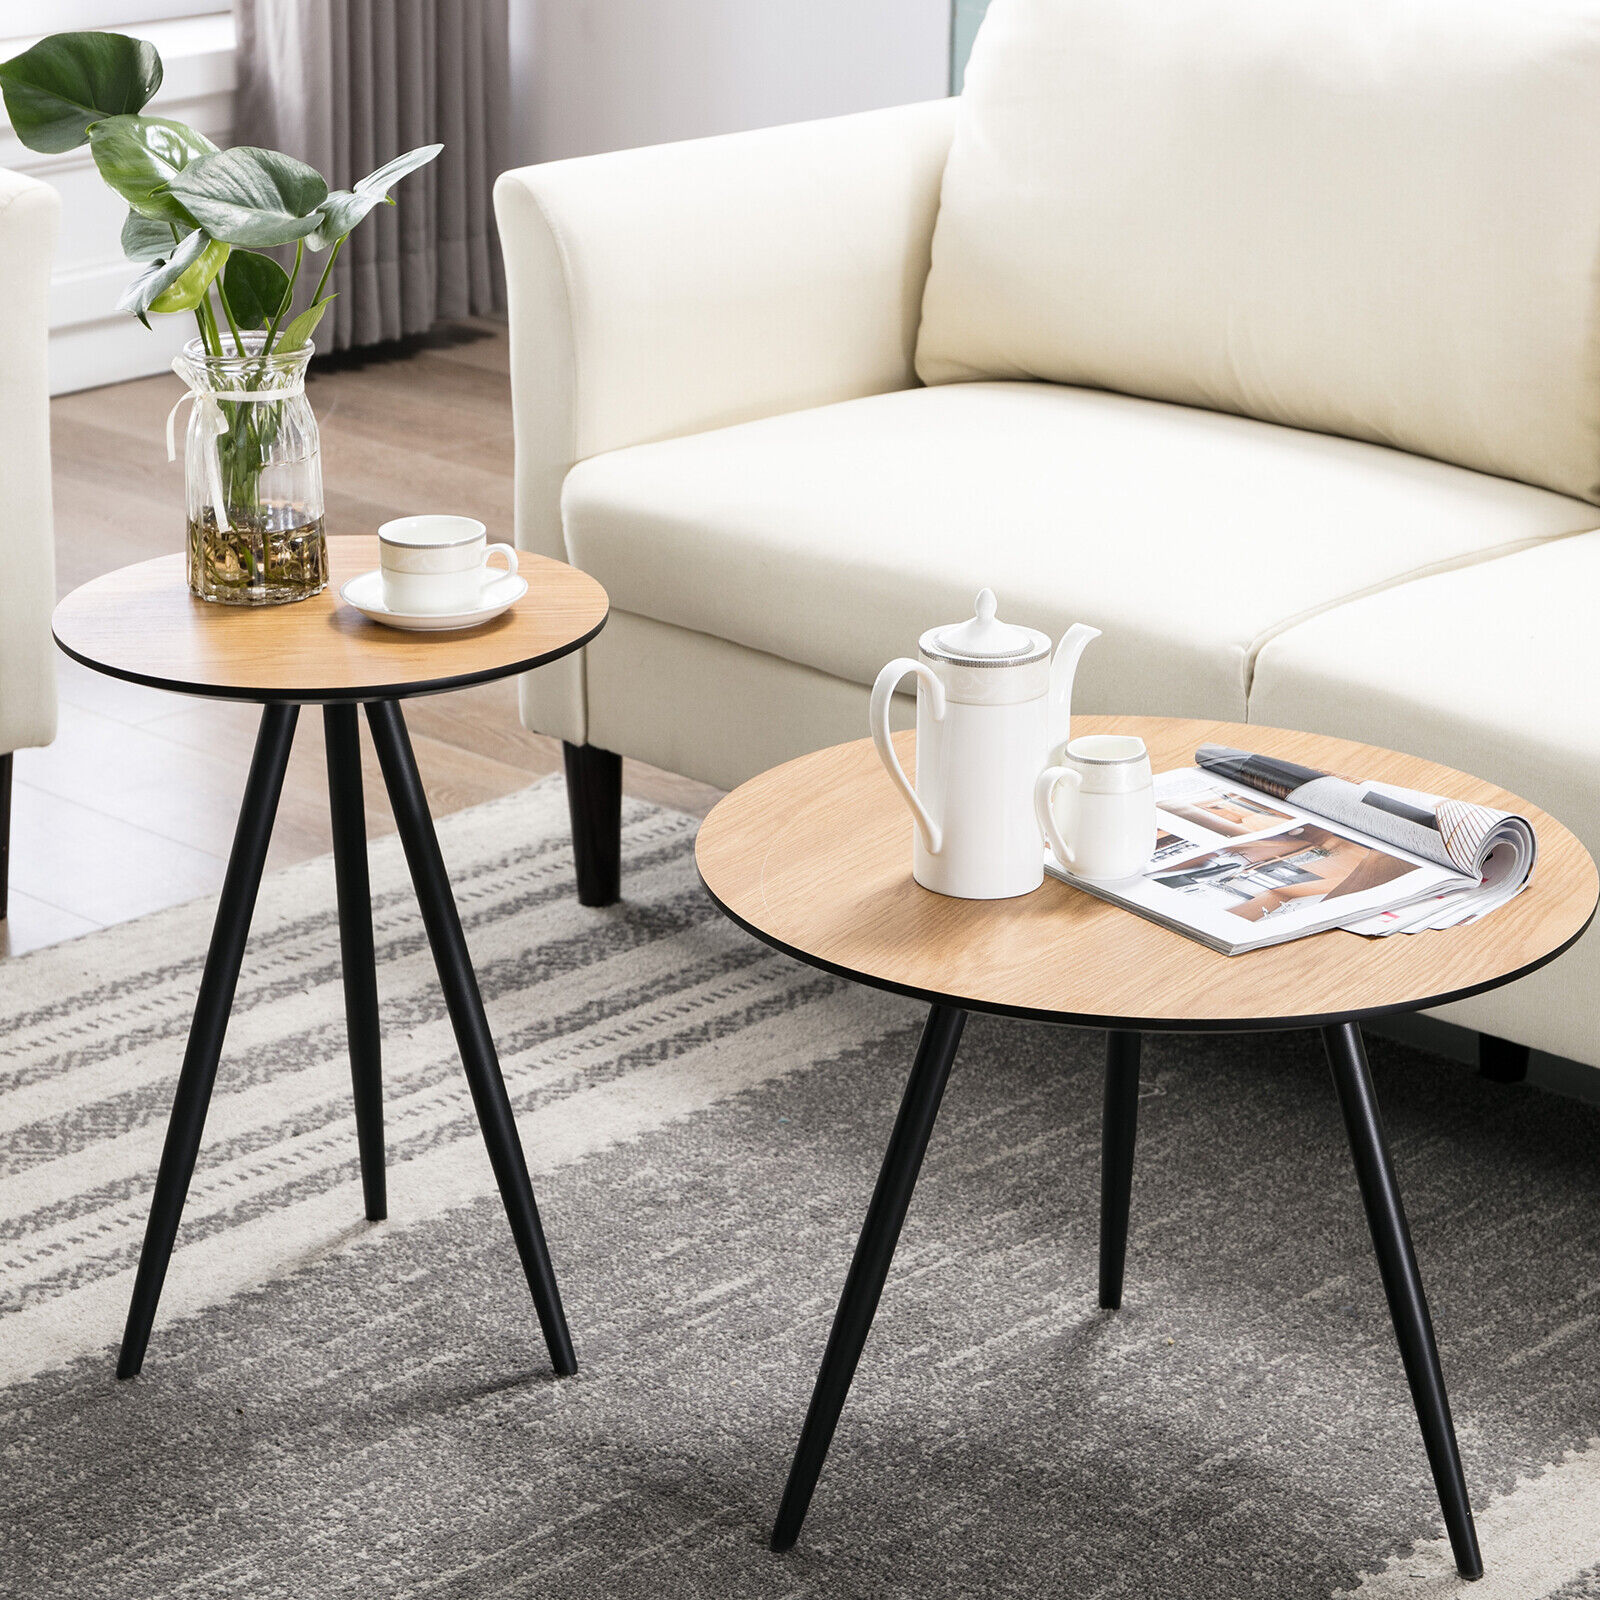 Round Side Coffee Table Desk Metal Legs Modern End Table Liv